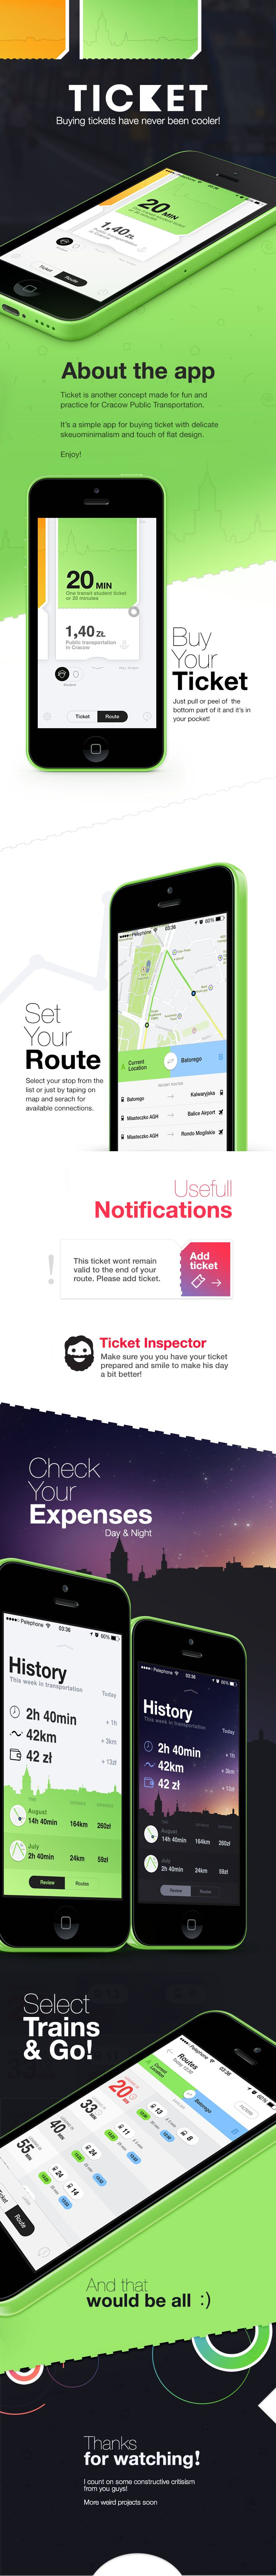 Ticket App https://www.behance.net/gallery/19678177/Ticket